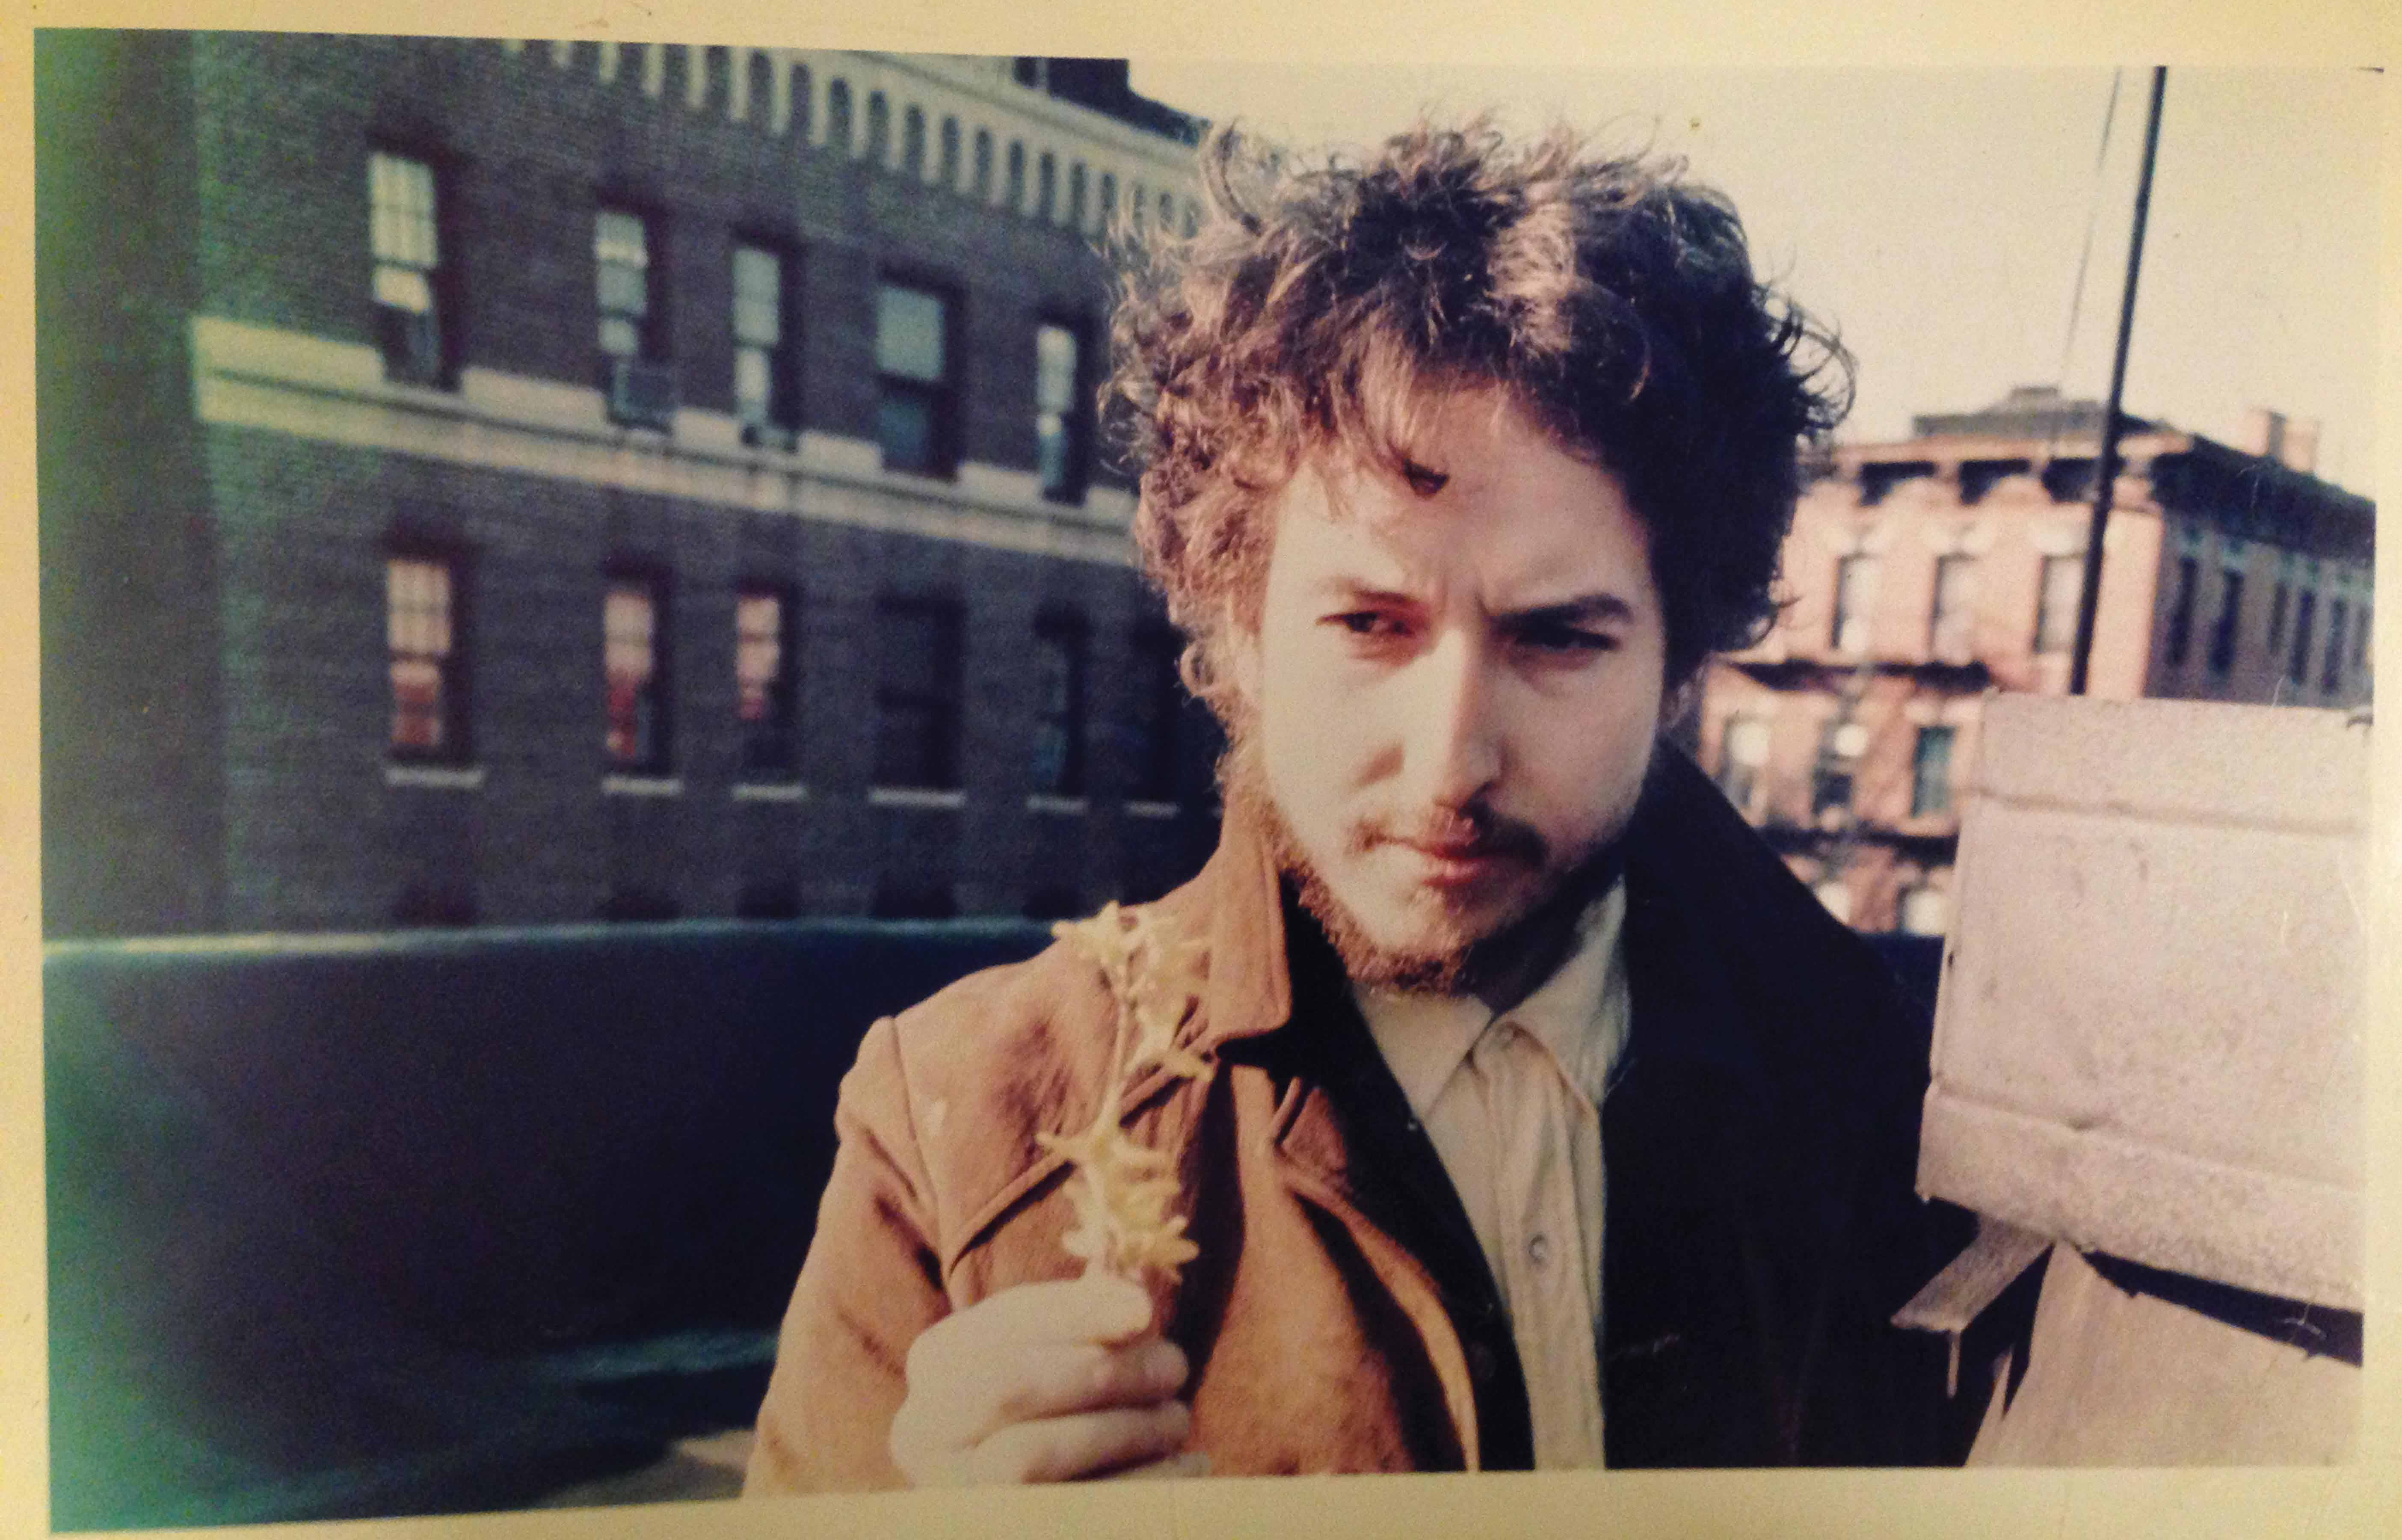 Dylan in New York, 1970